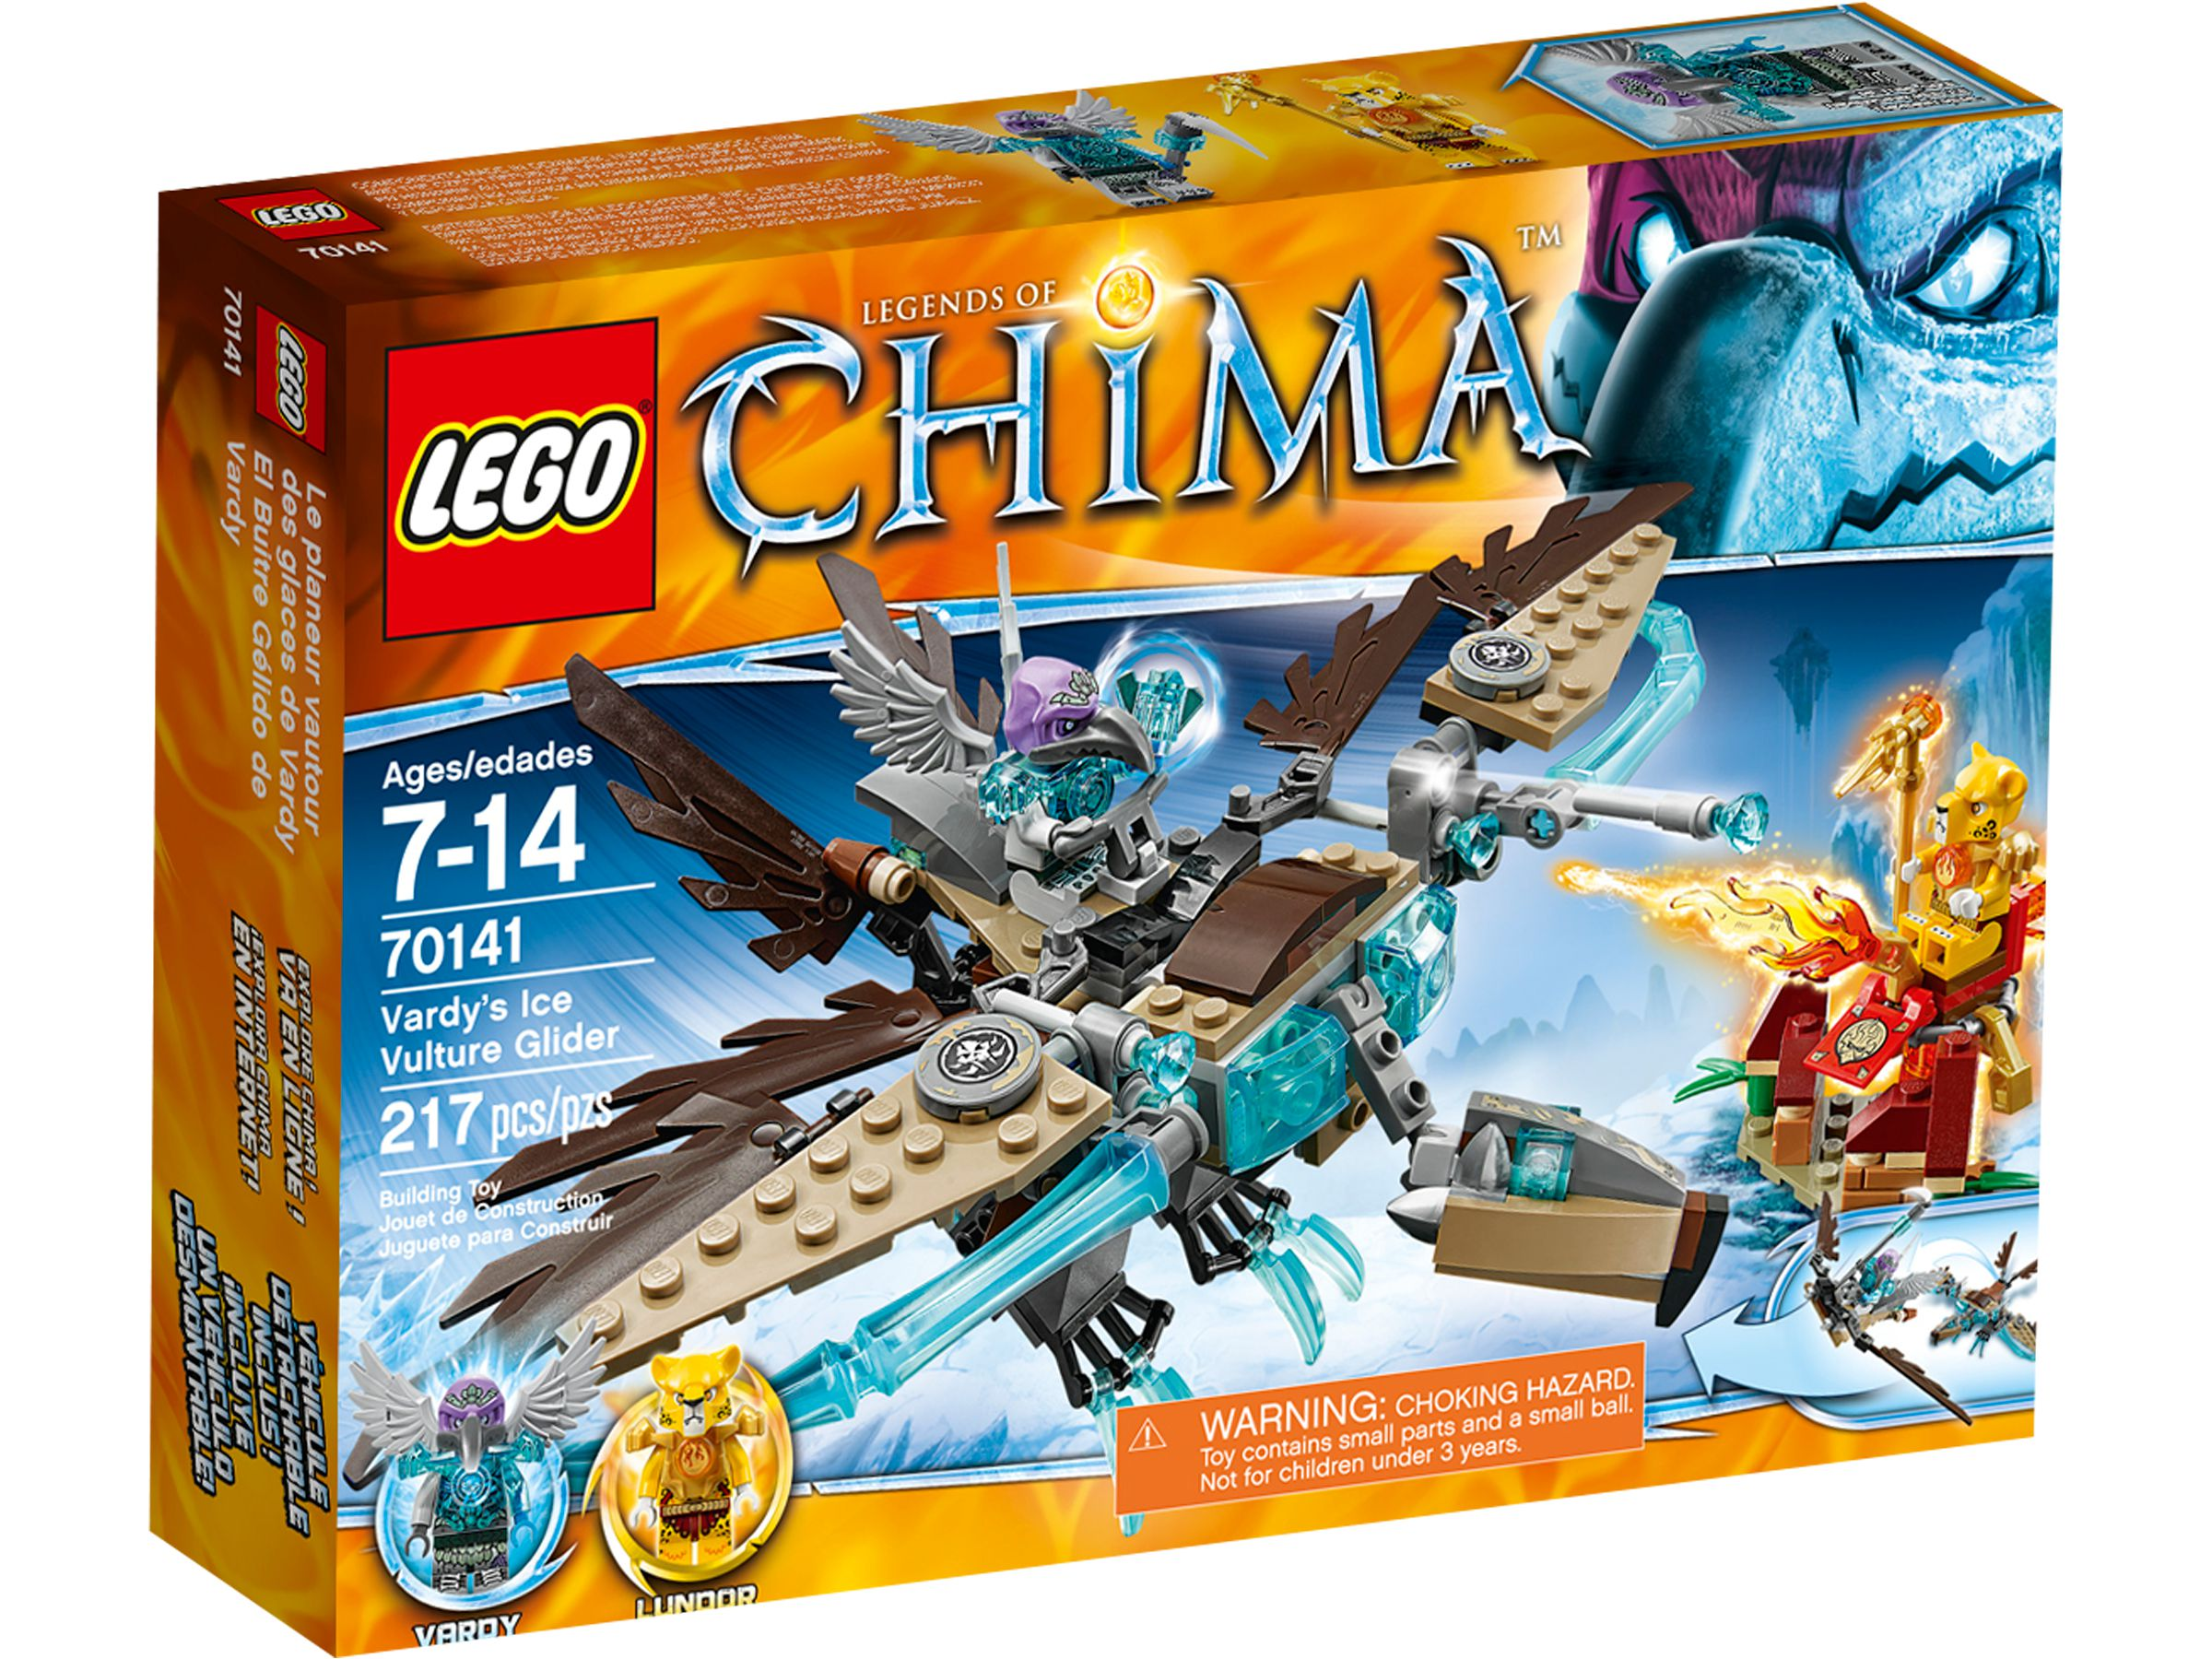 LEGO Legends Of Chima 70141 Vardys Eis-Gleiter LEGO_70141_alt1.jpg